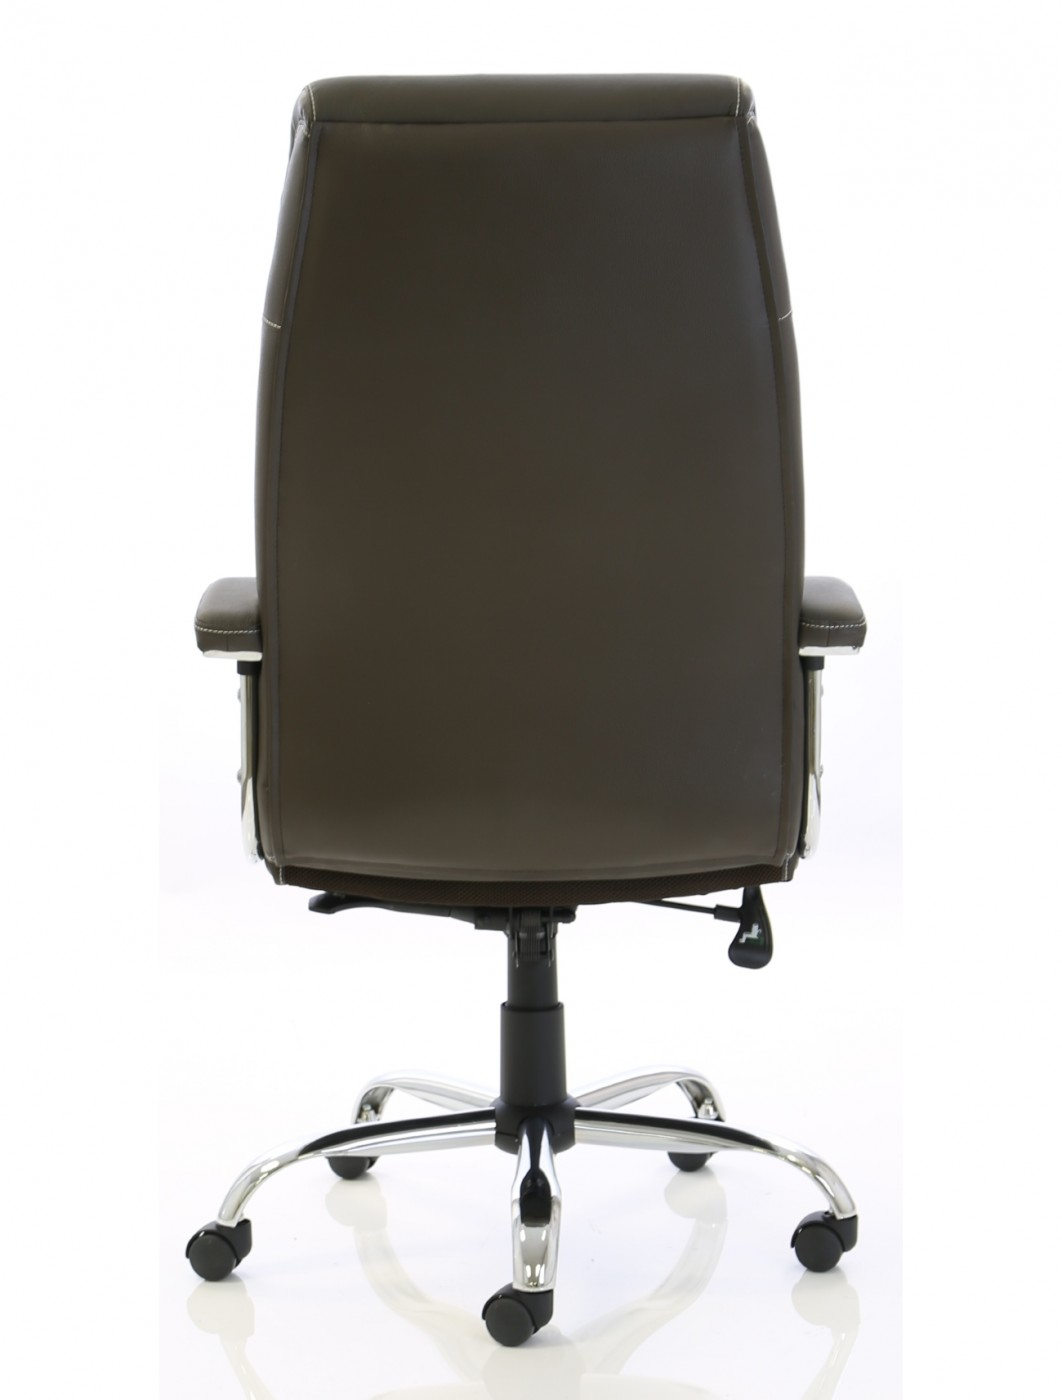 brown leather office chair. Office Chairs - Penza Executive Brown Leather Chair EX000187  Enlarged View Brown Leather Office Chair